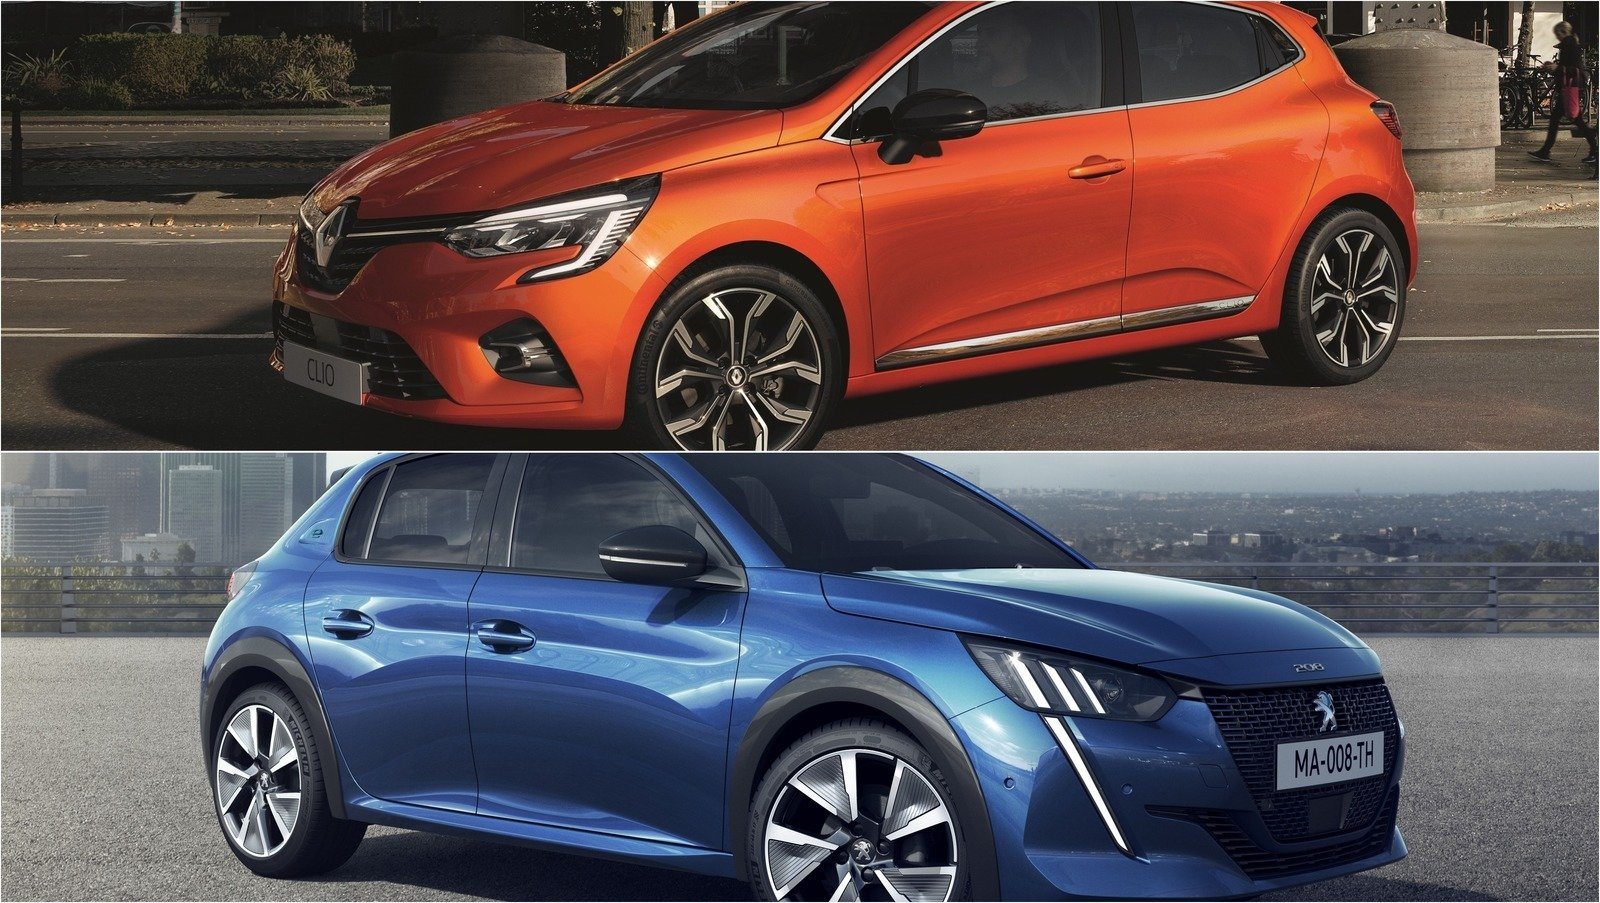 2019 peugeot 208 vs 2019 renault clio pictures photos wallpapers top speed. Black Bedroom Furniture Sets. Home Design Ideas